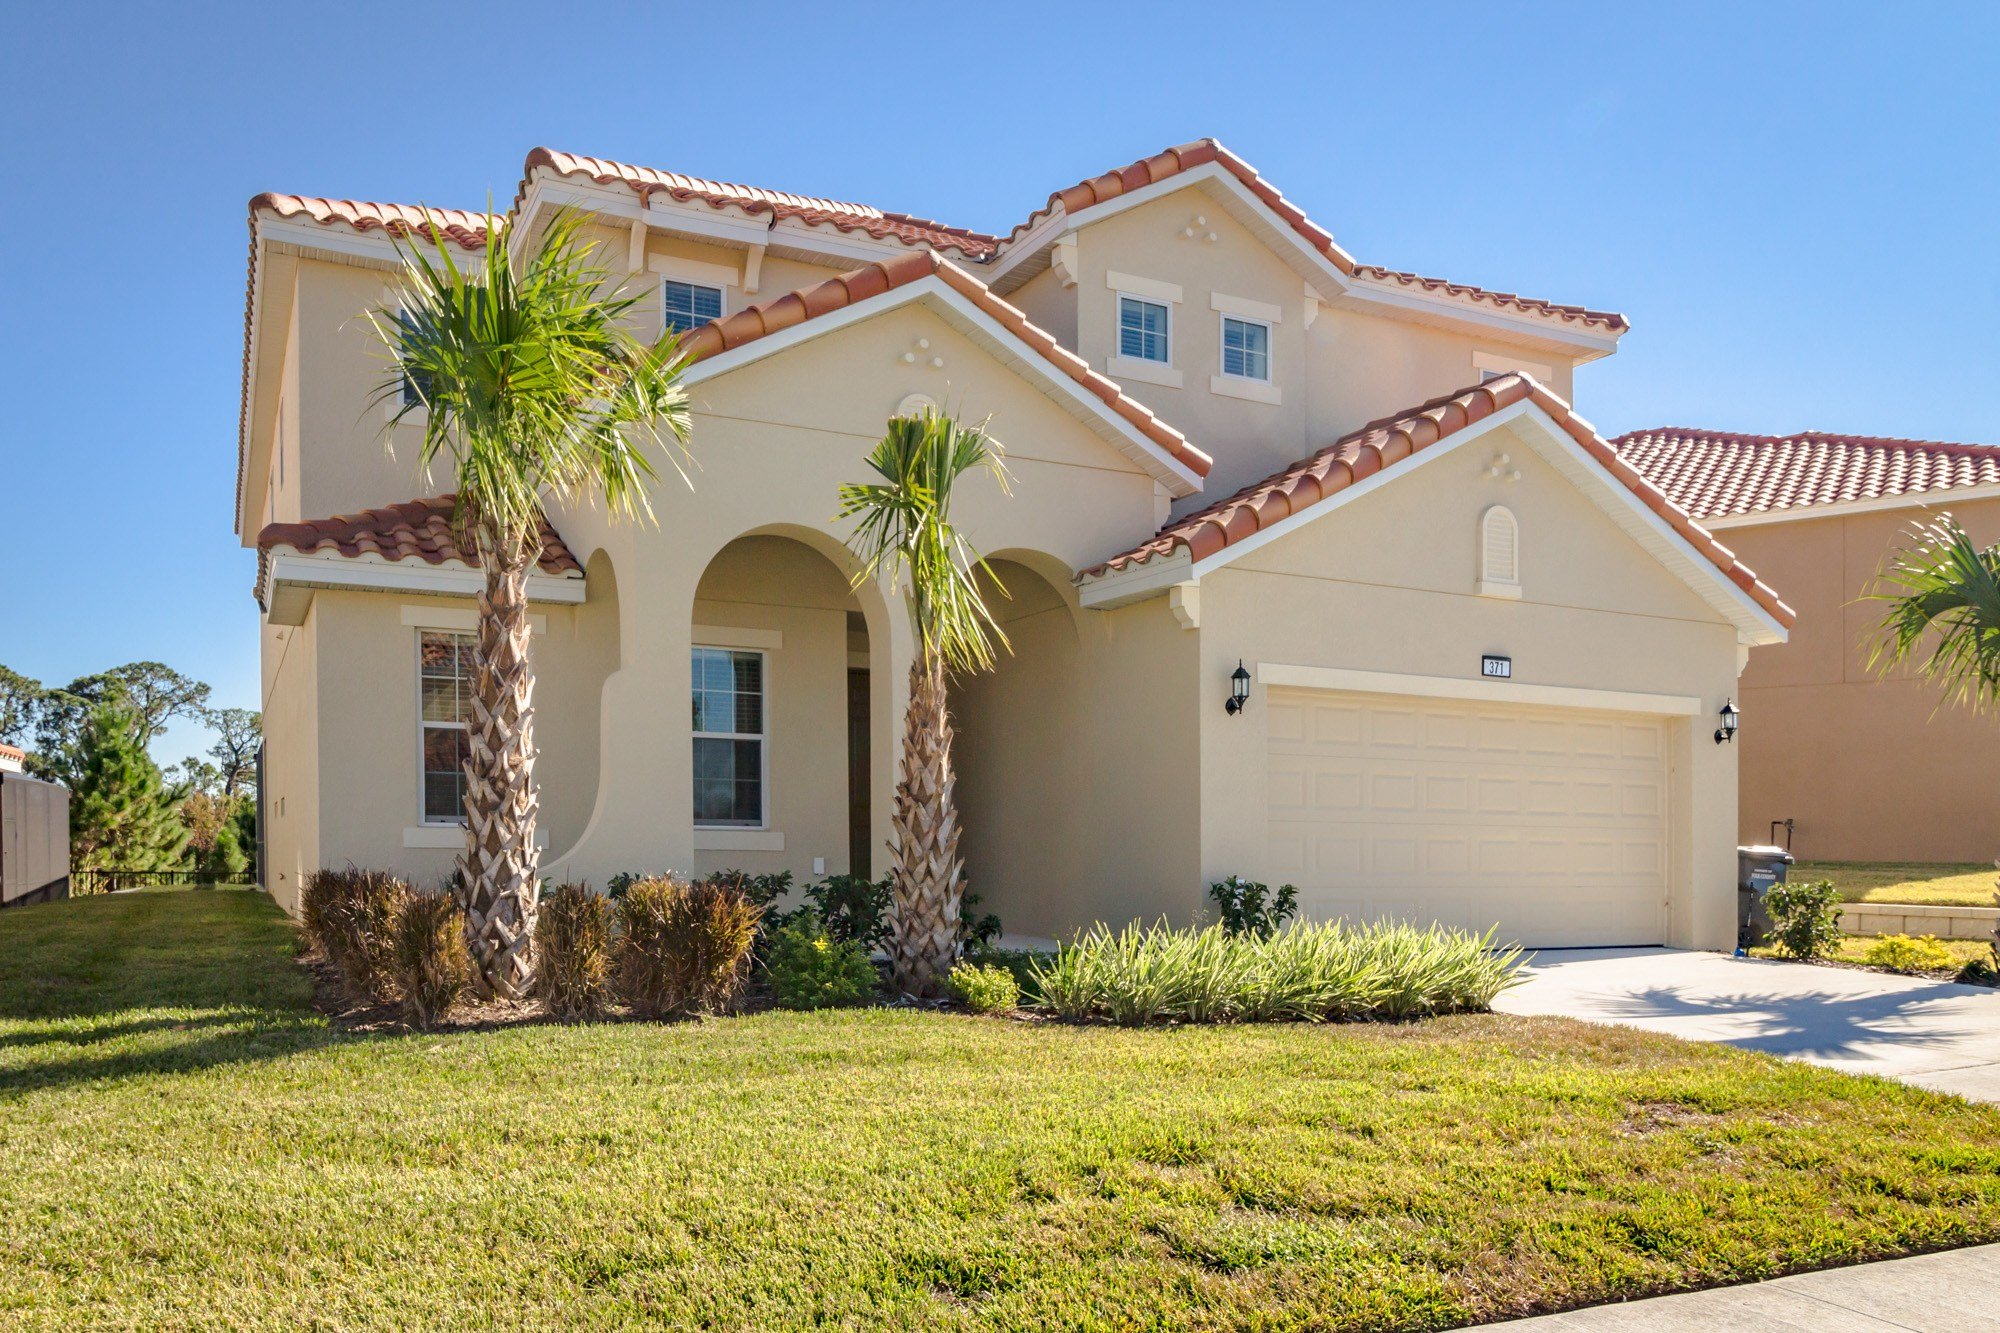 Best Kissimmee Vacation Rentals Florida Kissimmee Condo Rentals Kissimmee Villas Kissimmee Rentals With Pictures